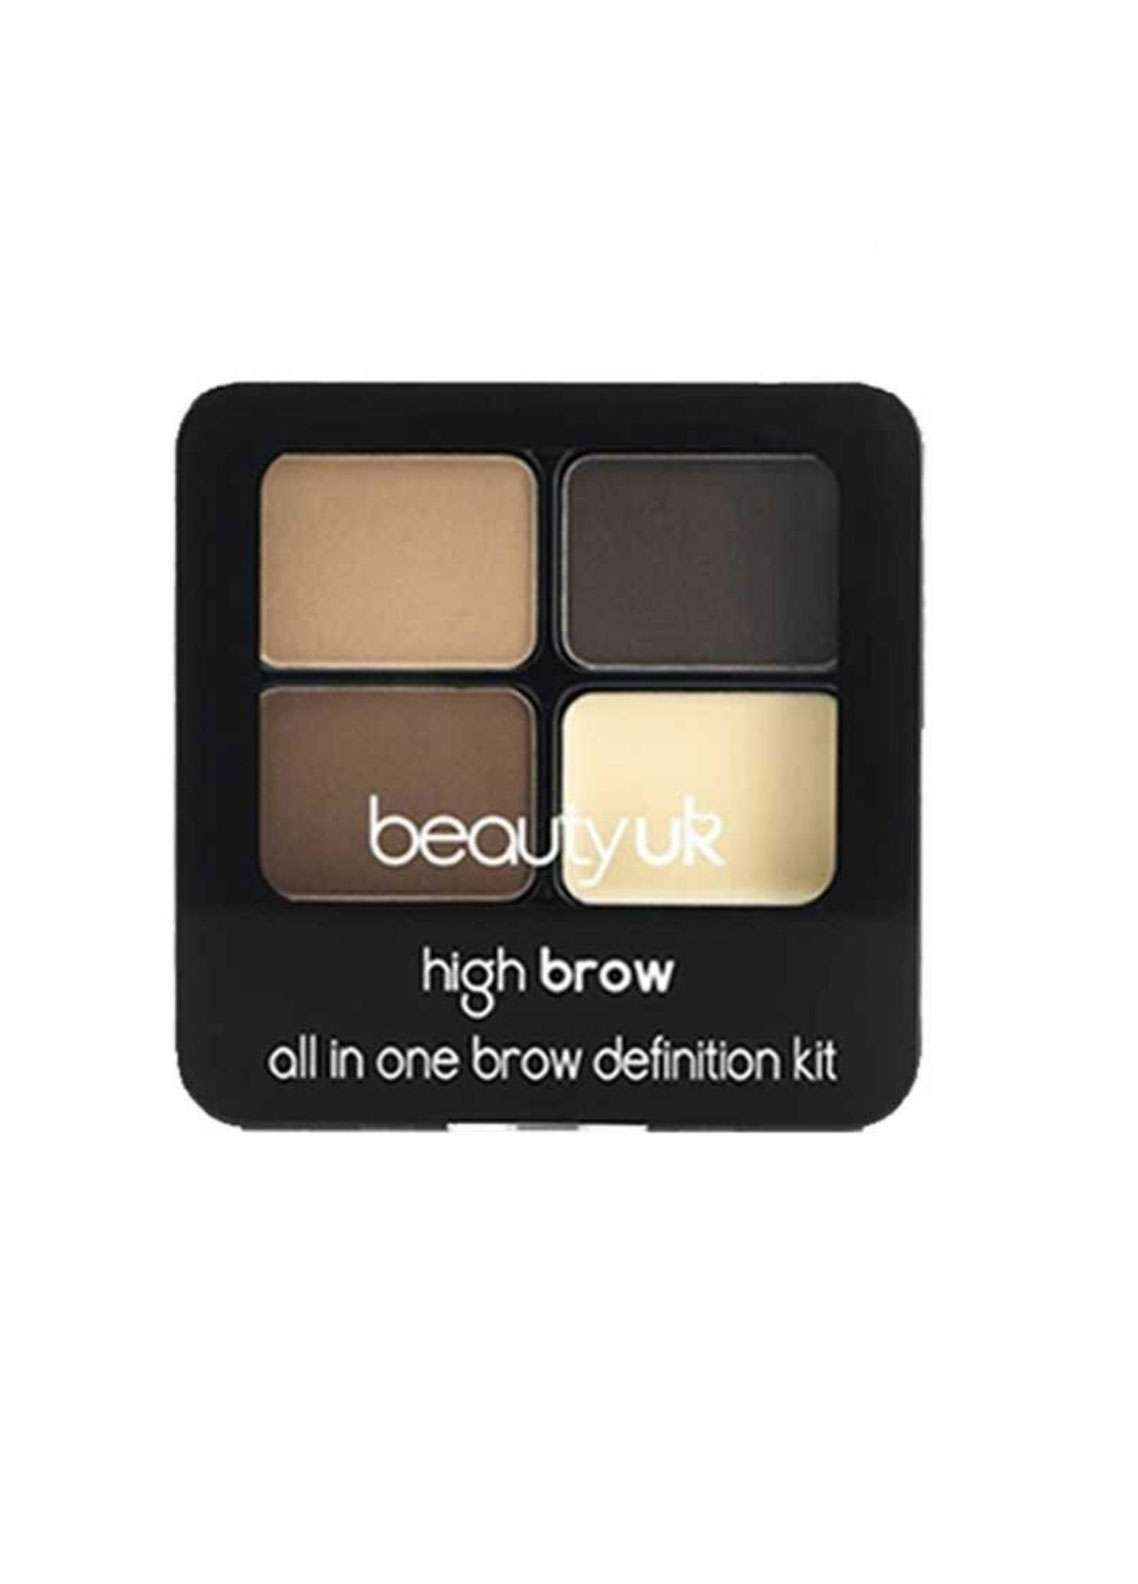 Beauty UK ALL in ONE High Brow Definition Kit